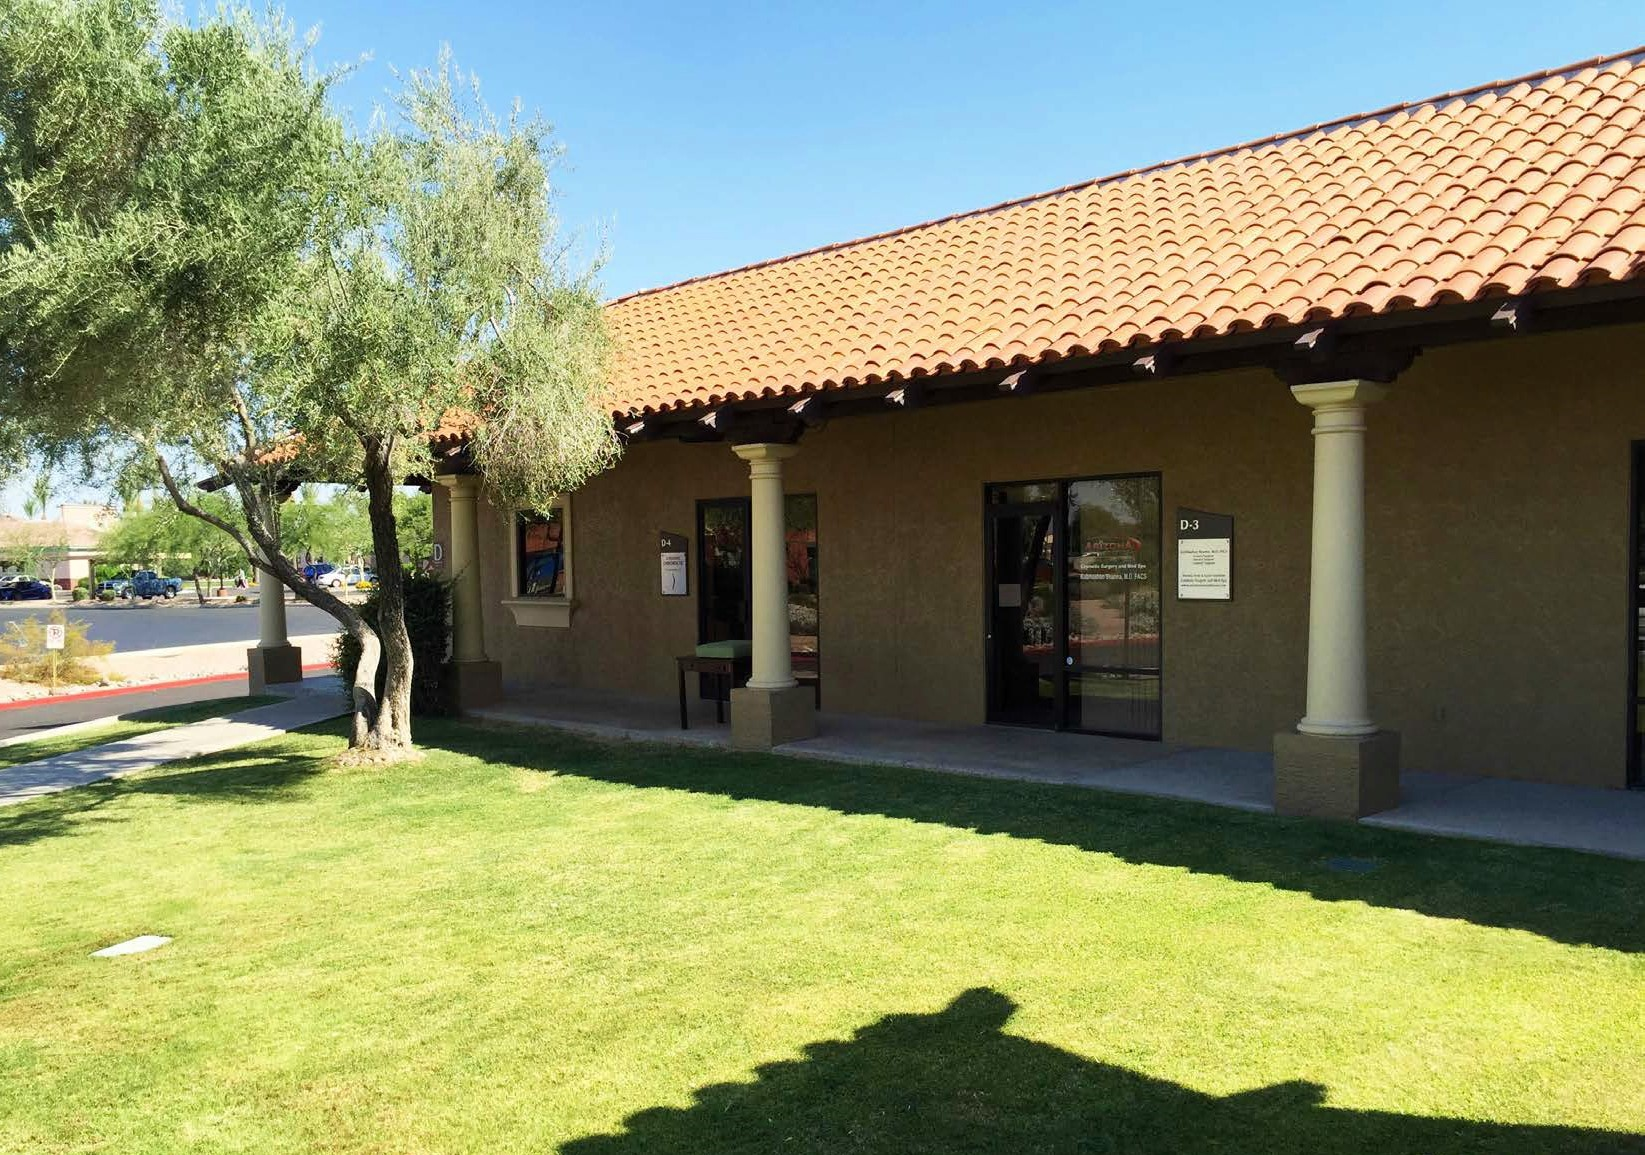 5620 W Thunderbird Rd, Glendale AZ 85306 Medical Office Condo